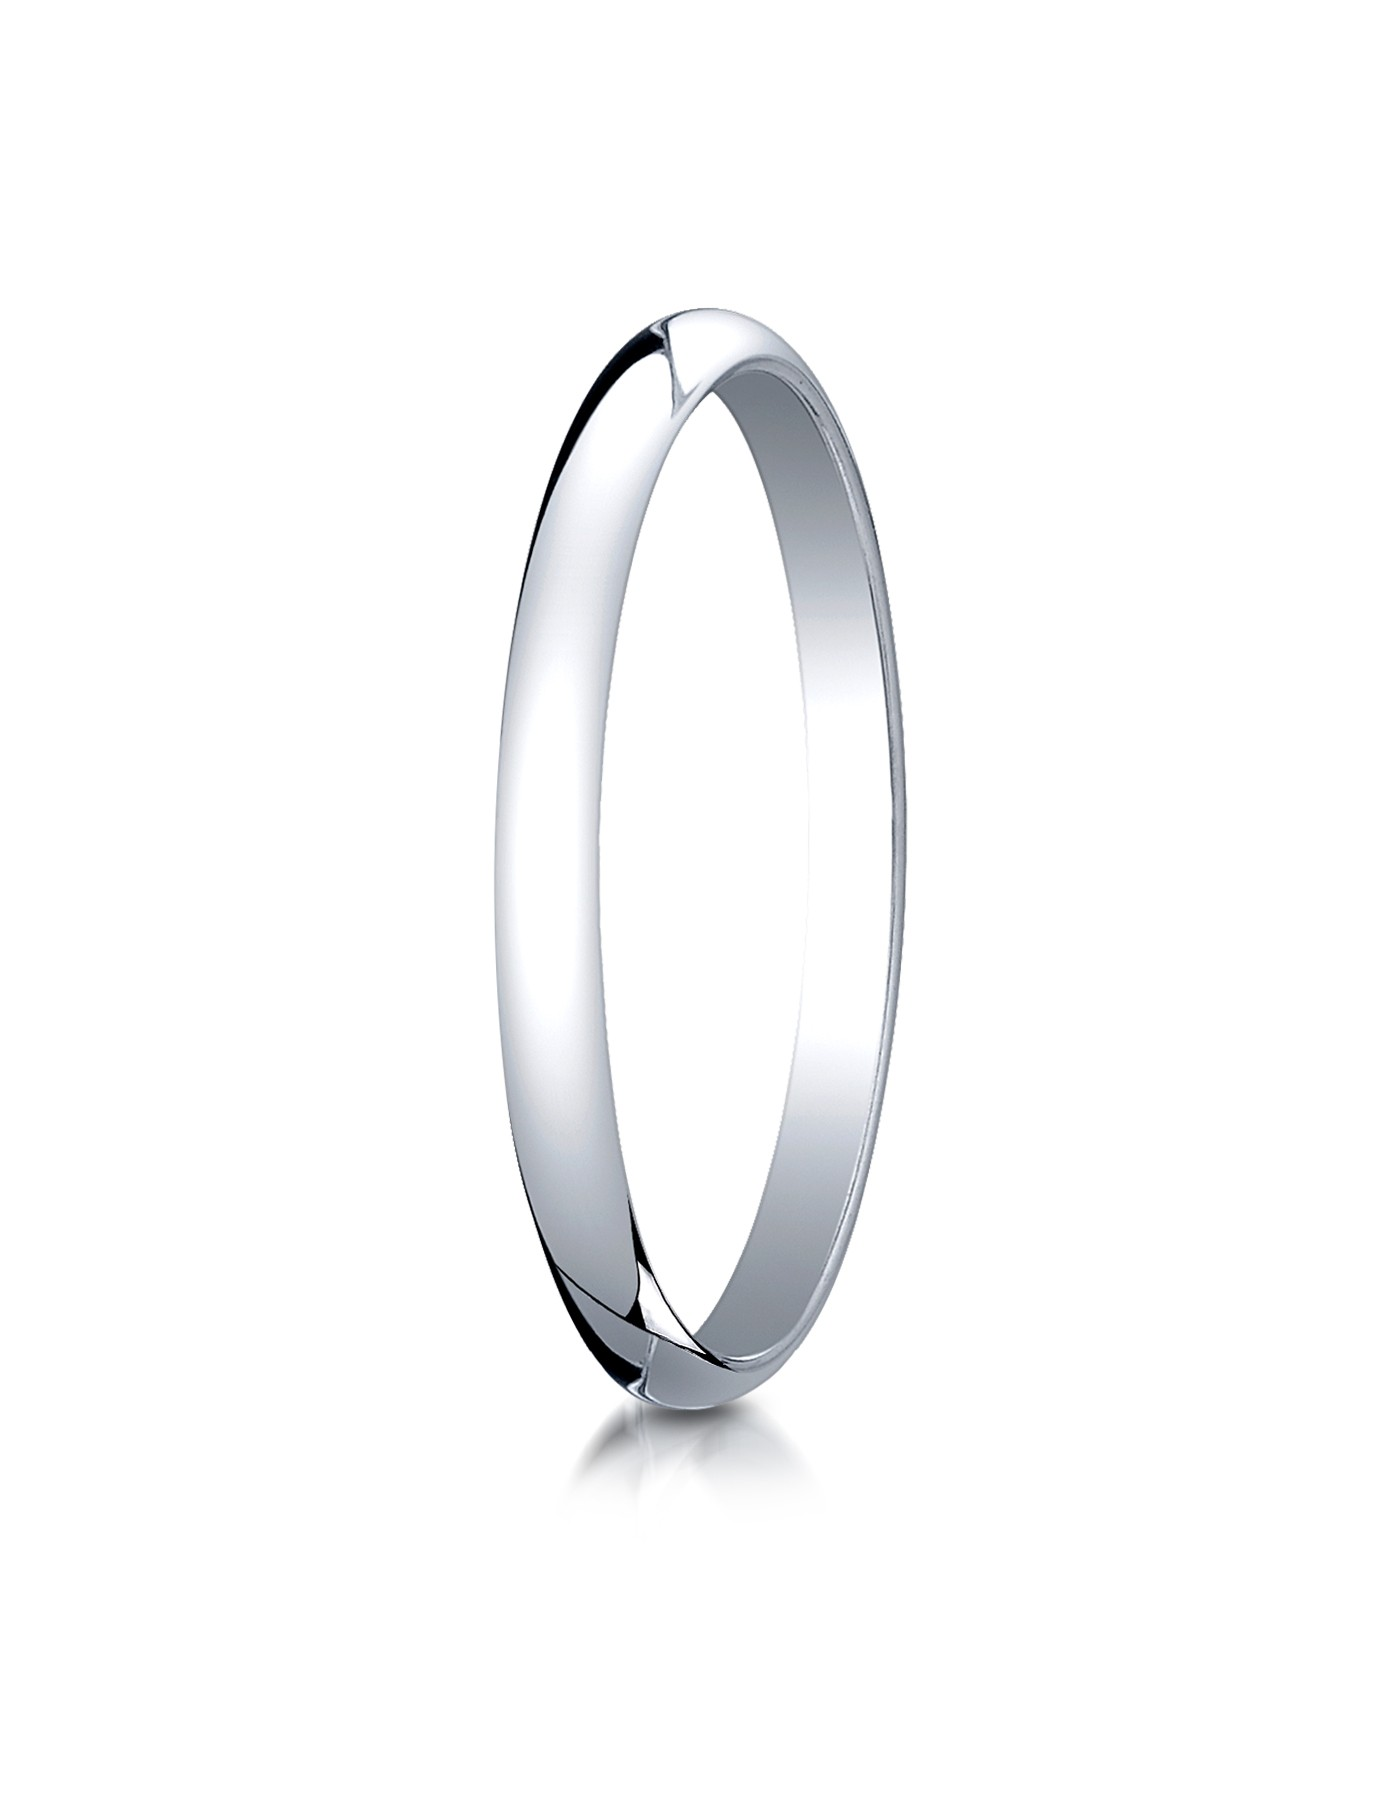 14k White Gold 2.0 Mm Slightly Domed Traditional Oval Ring